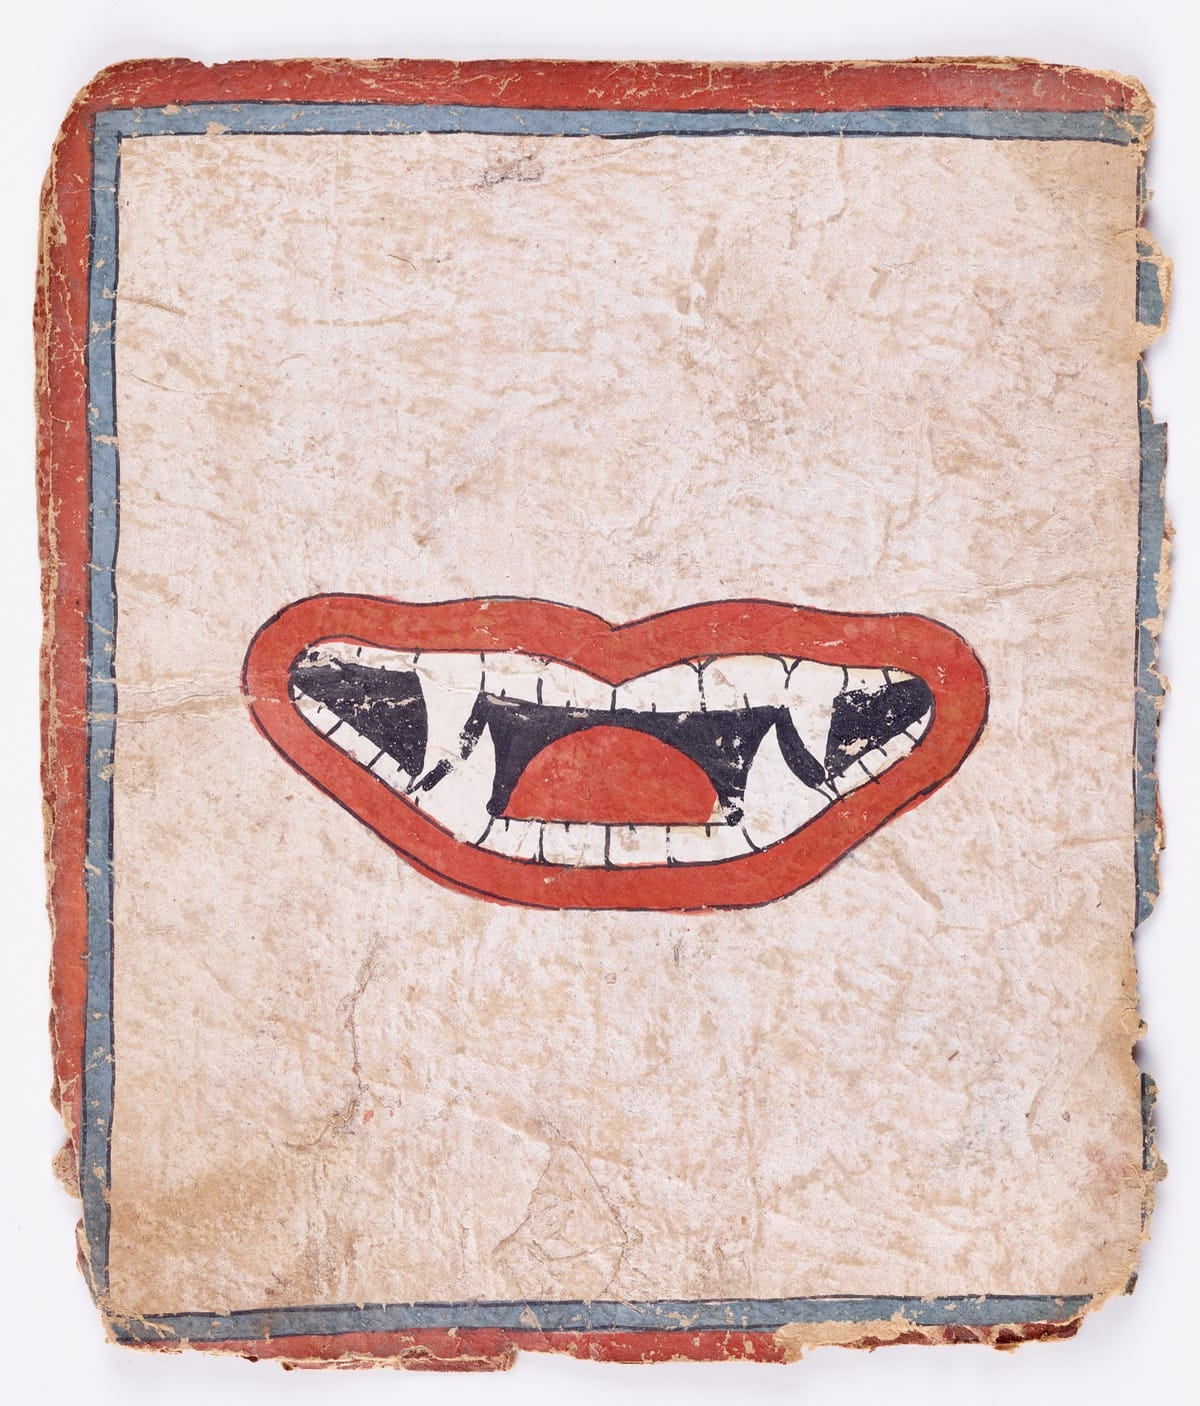 Image of fanged mouth on paper.